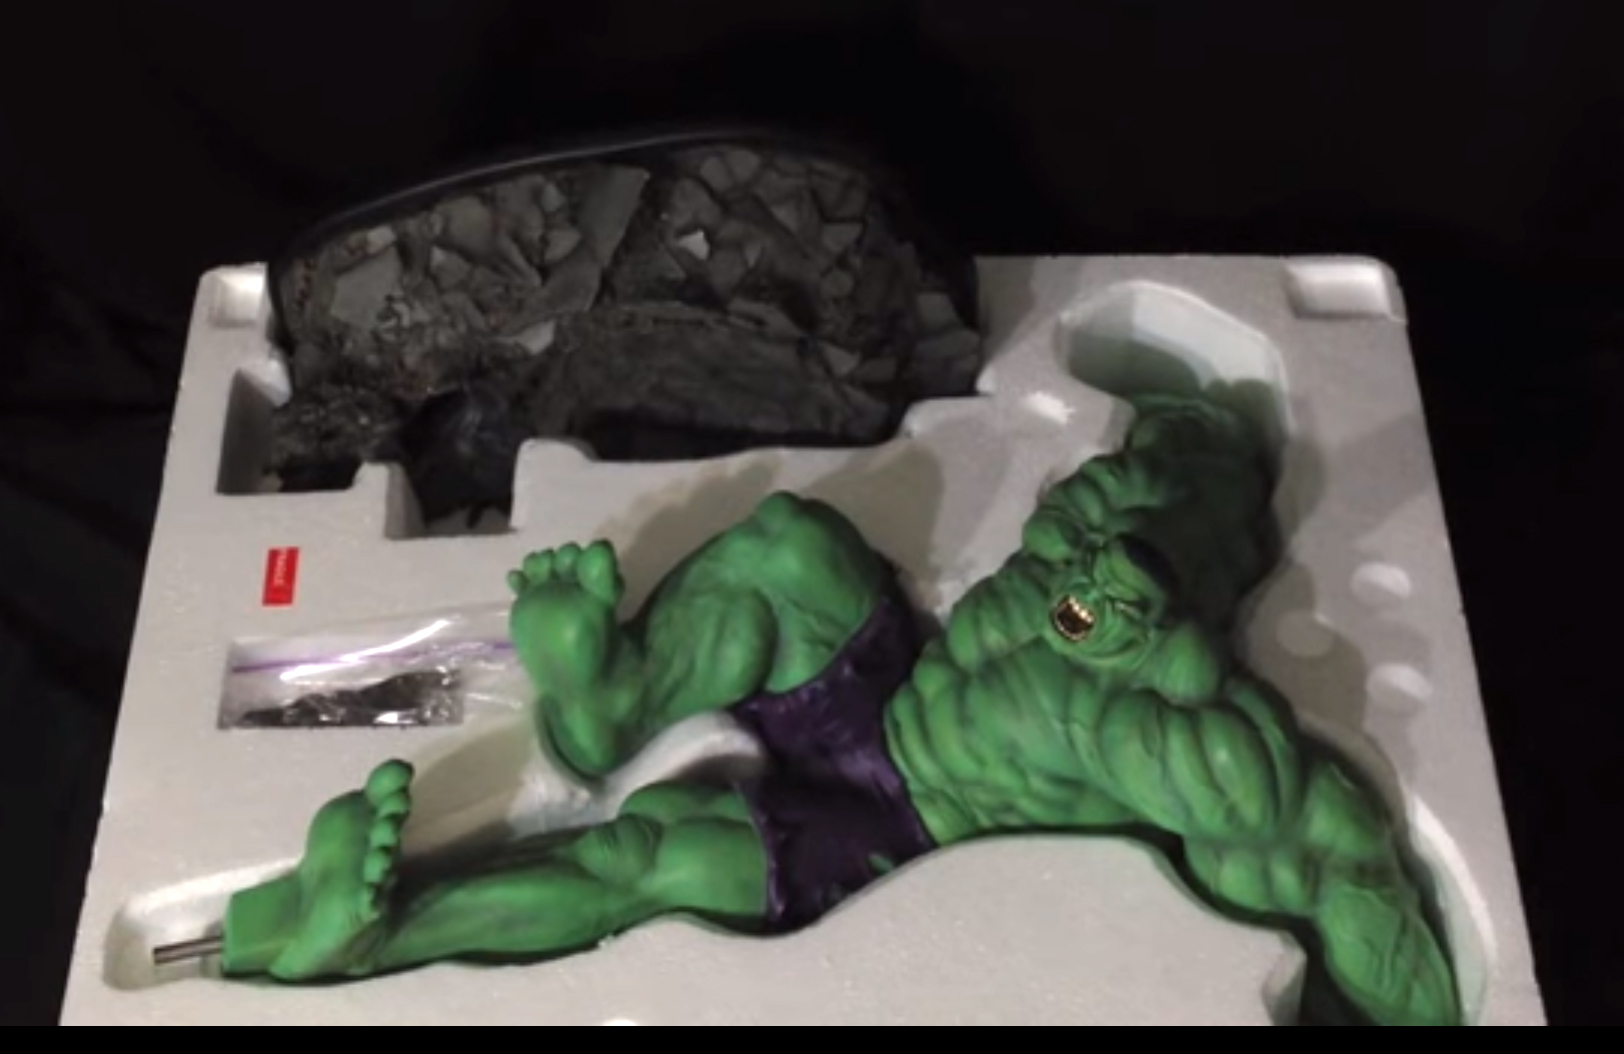 Sideshow Green hulk Comiquette 1/5 scale – Statue Unboxing